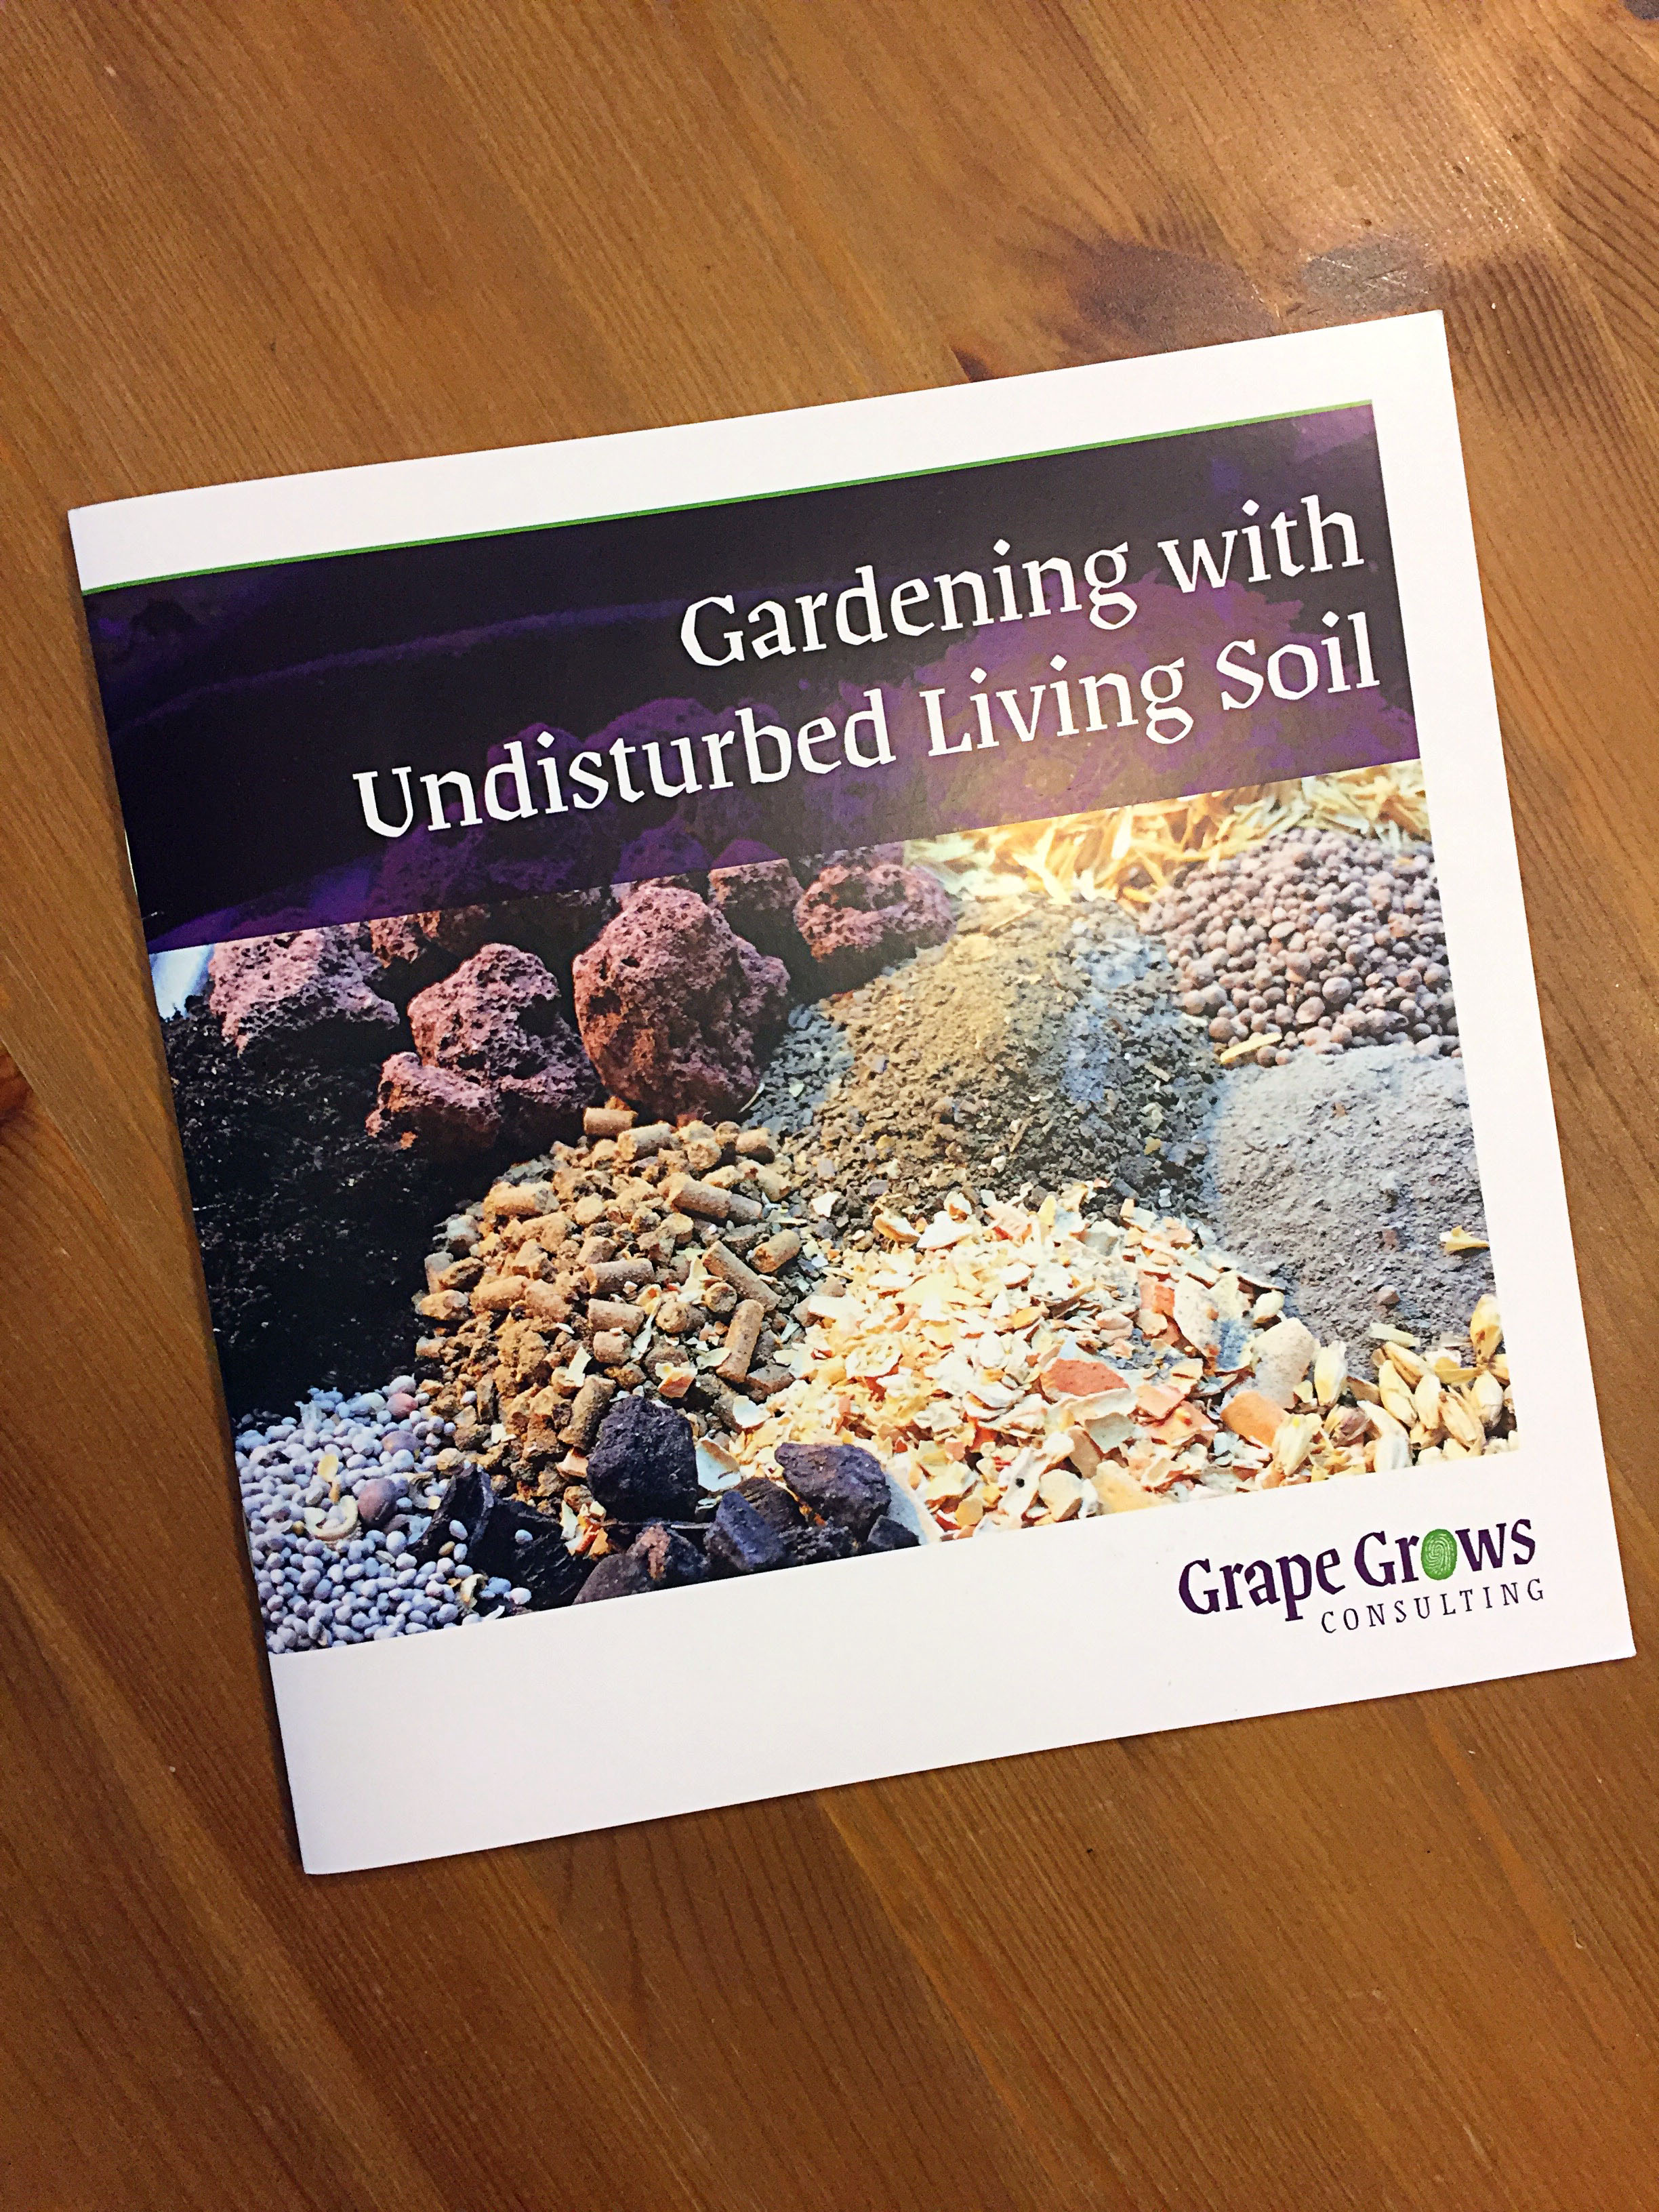 Gardening with Undisturbed Living Soil